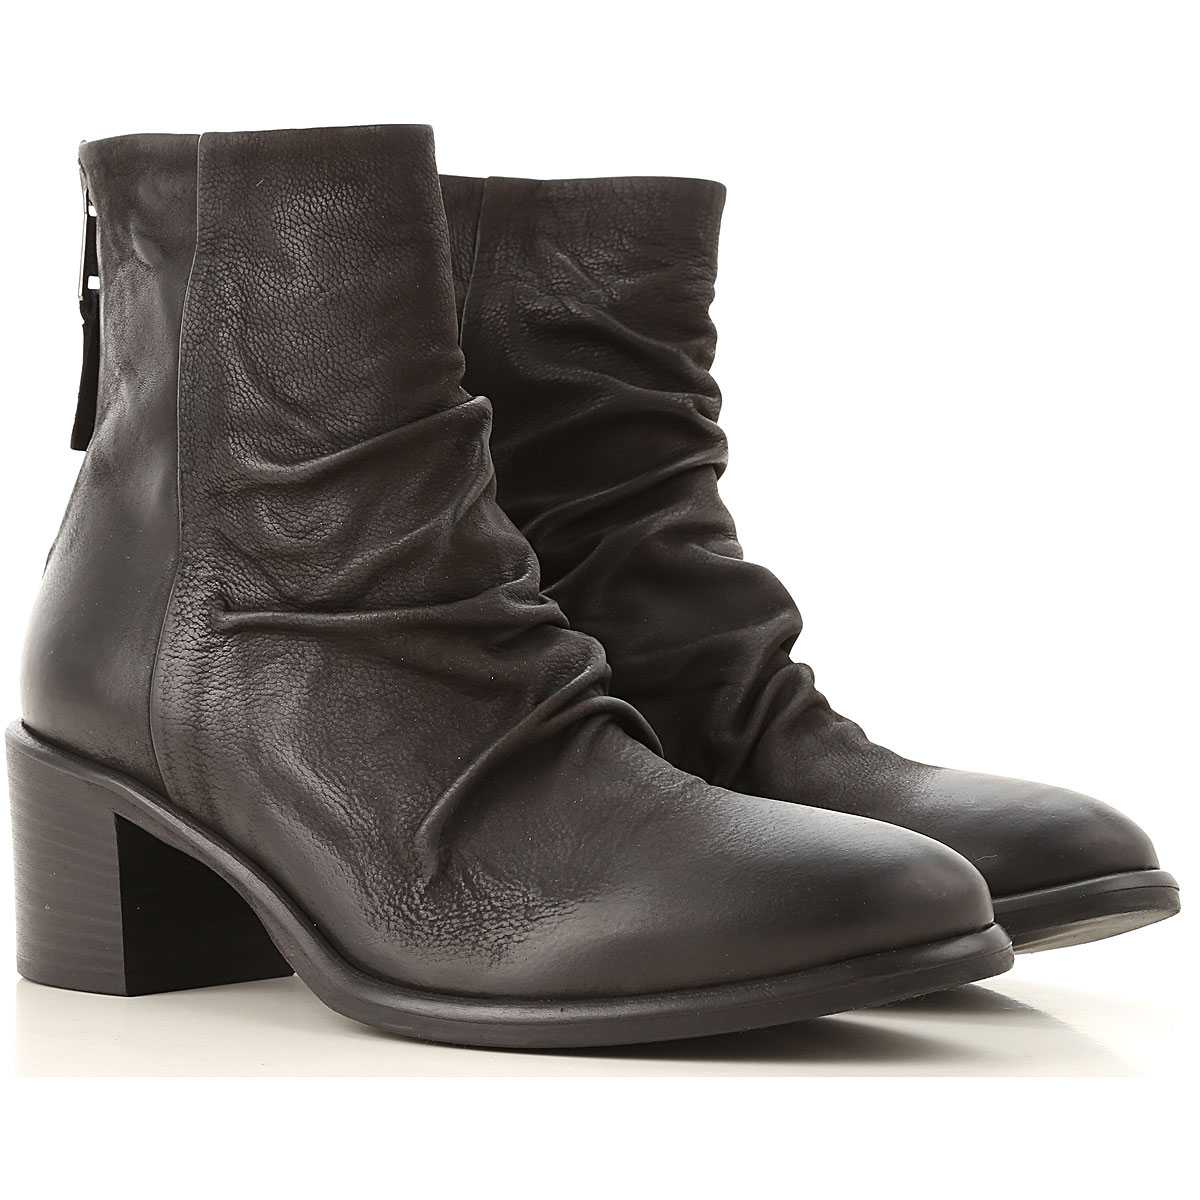 Strategia Boots for Women, Booties On Sale, Black, Leather, 2019, 10 11 5 6 6.5 7 8 8.5 9 9.5